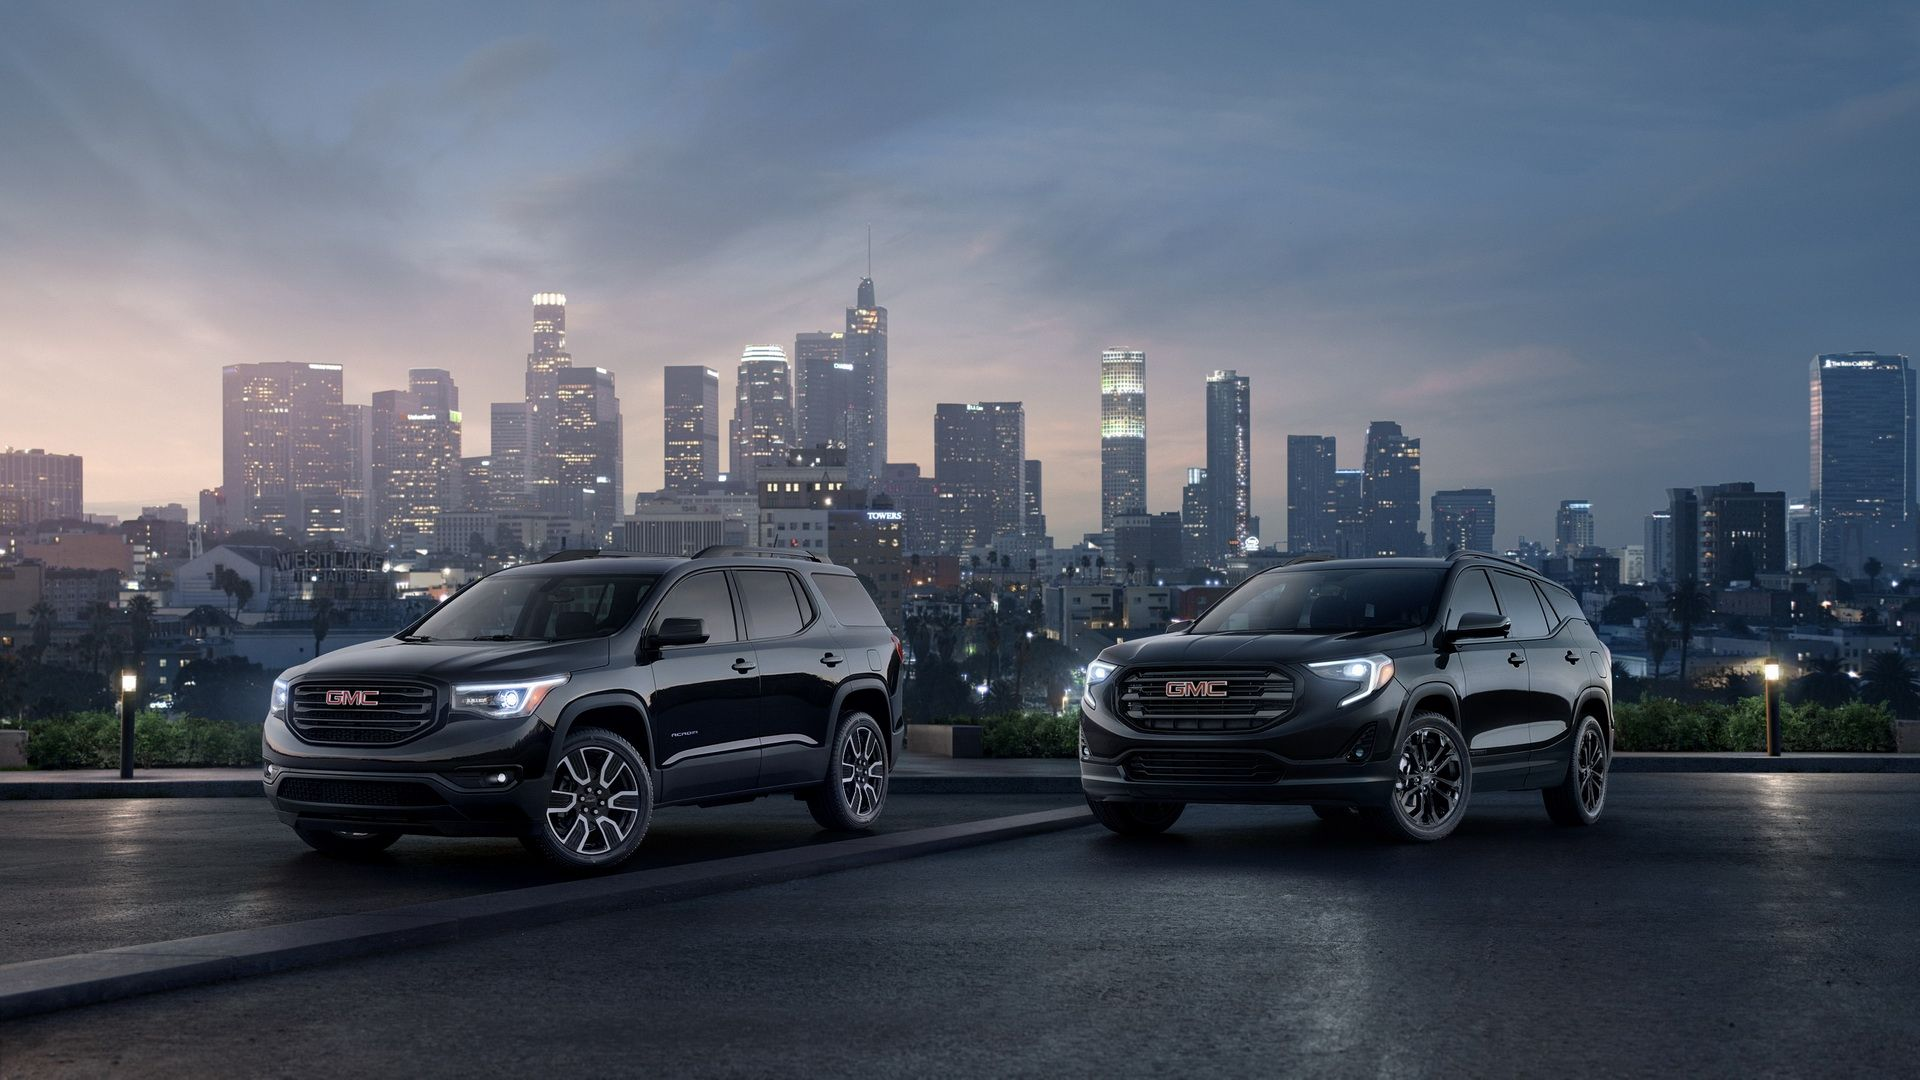 Gmc Launches 2019 Terrain And Acadia Black Edition Models Suvs